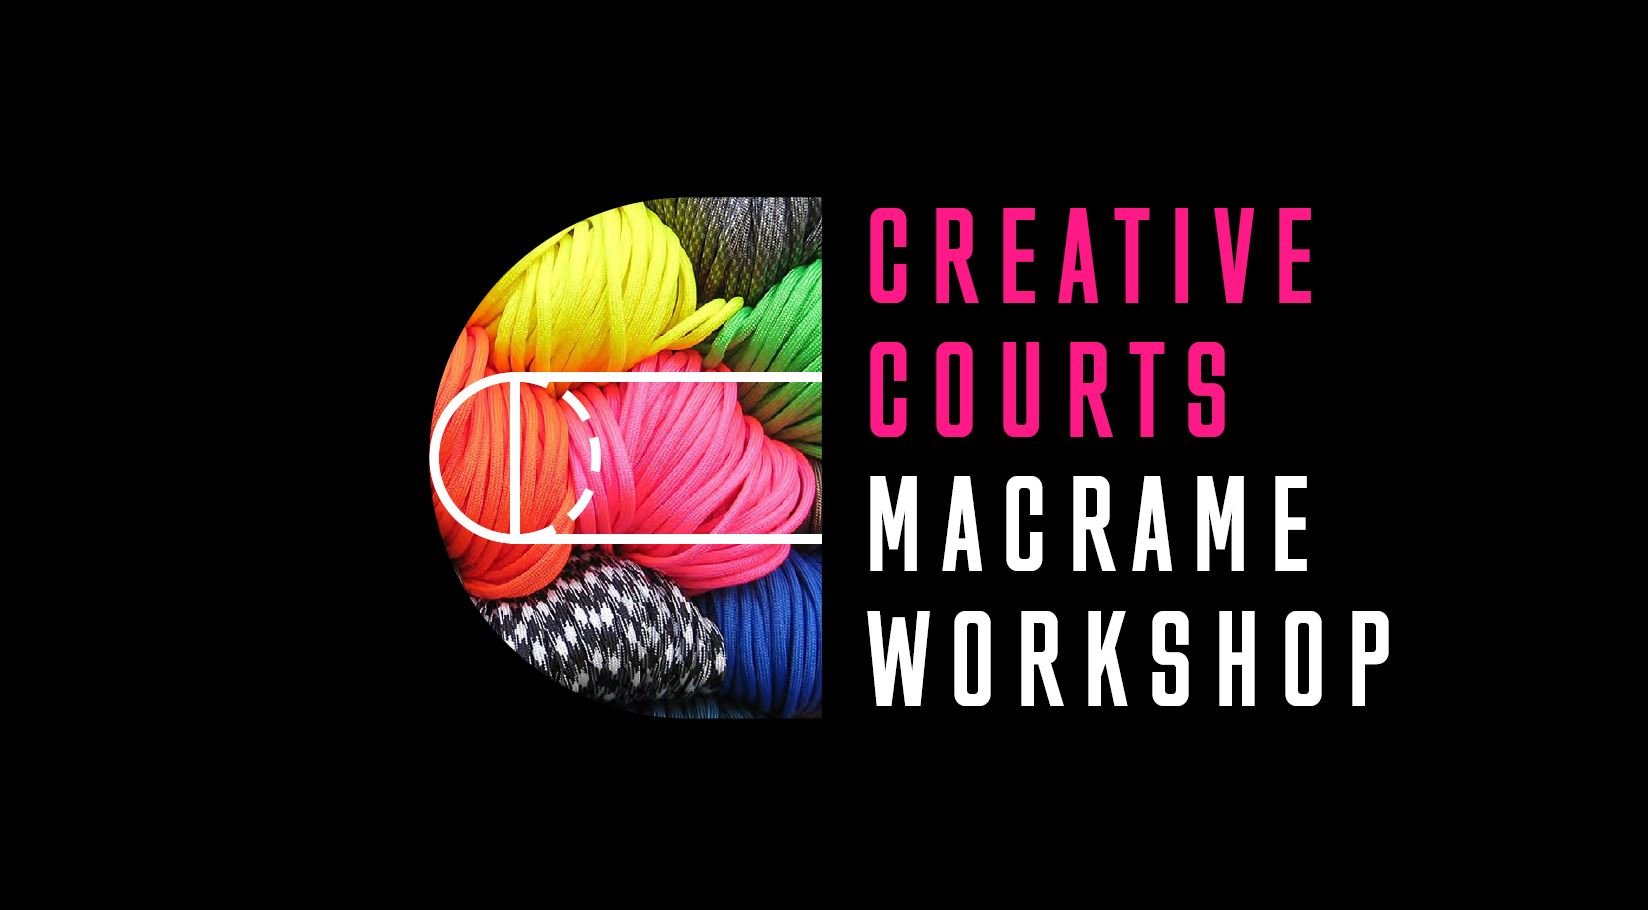 284771 creative%20courts%20makrame%20workshop 29aa54 original 1531230936